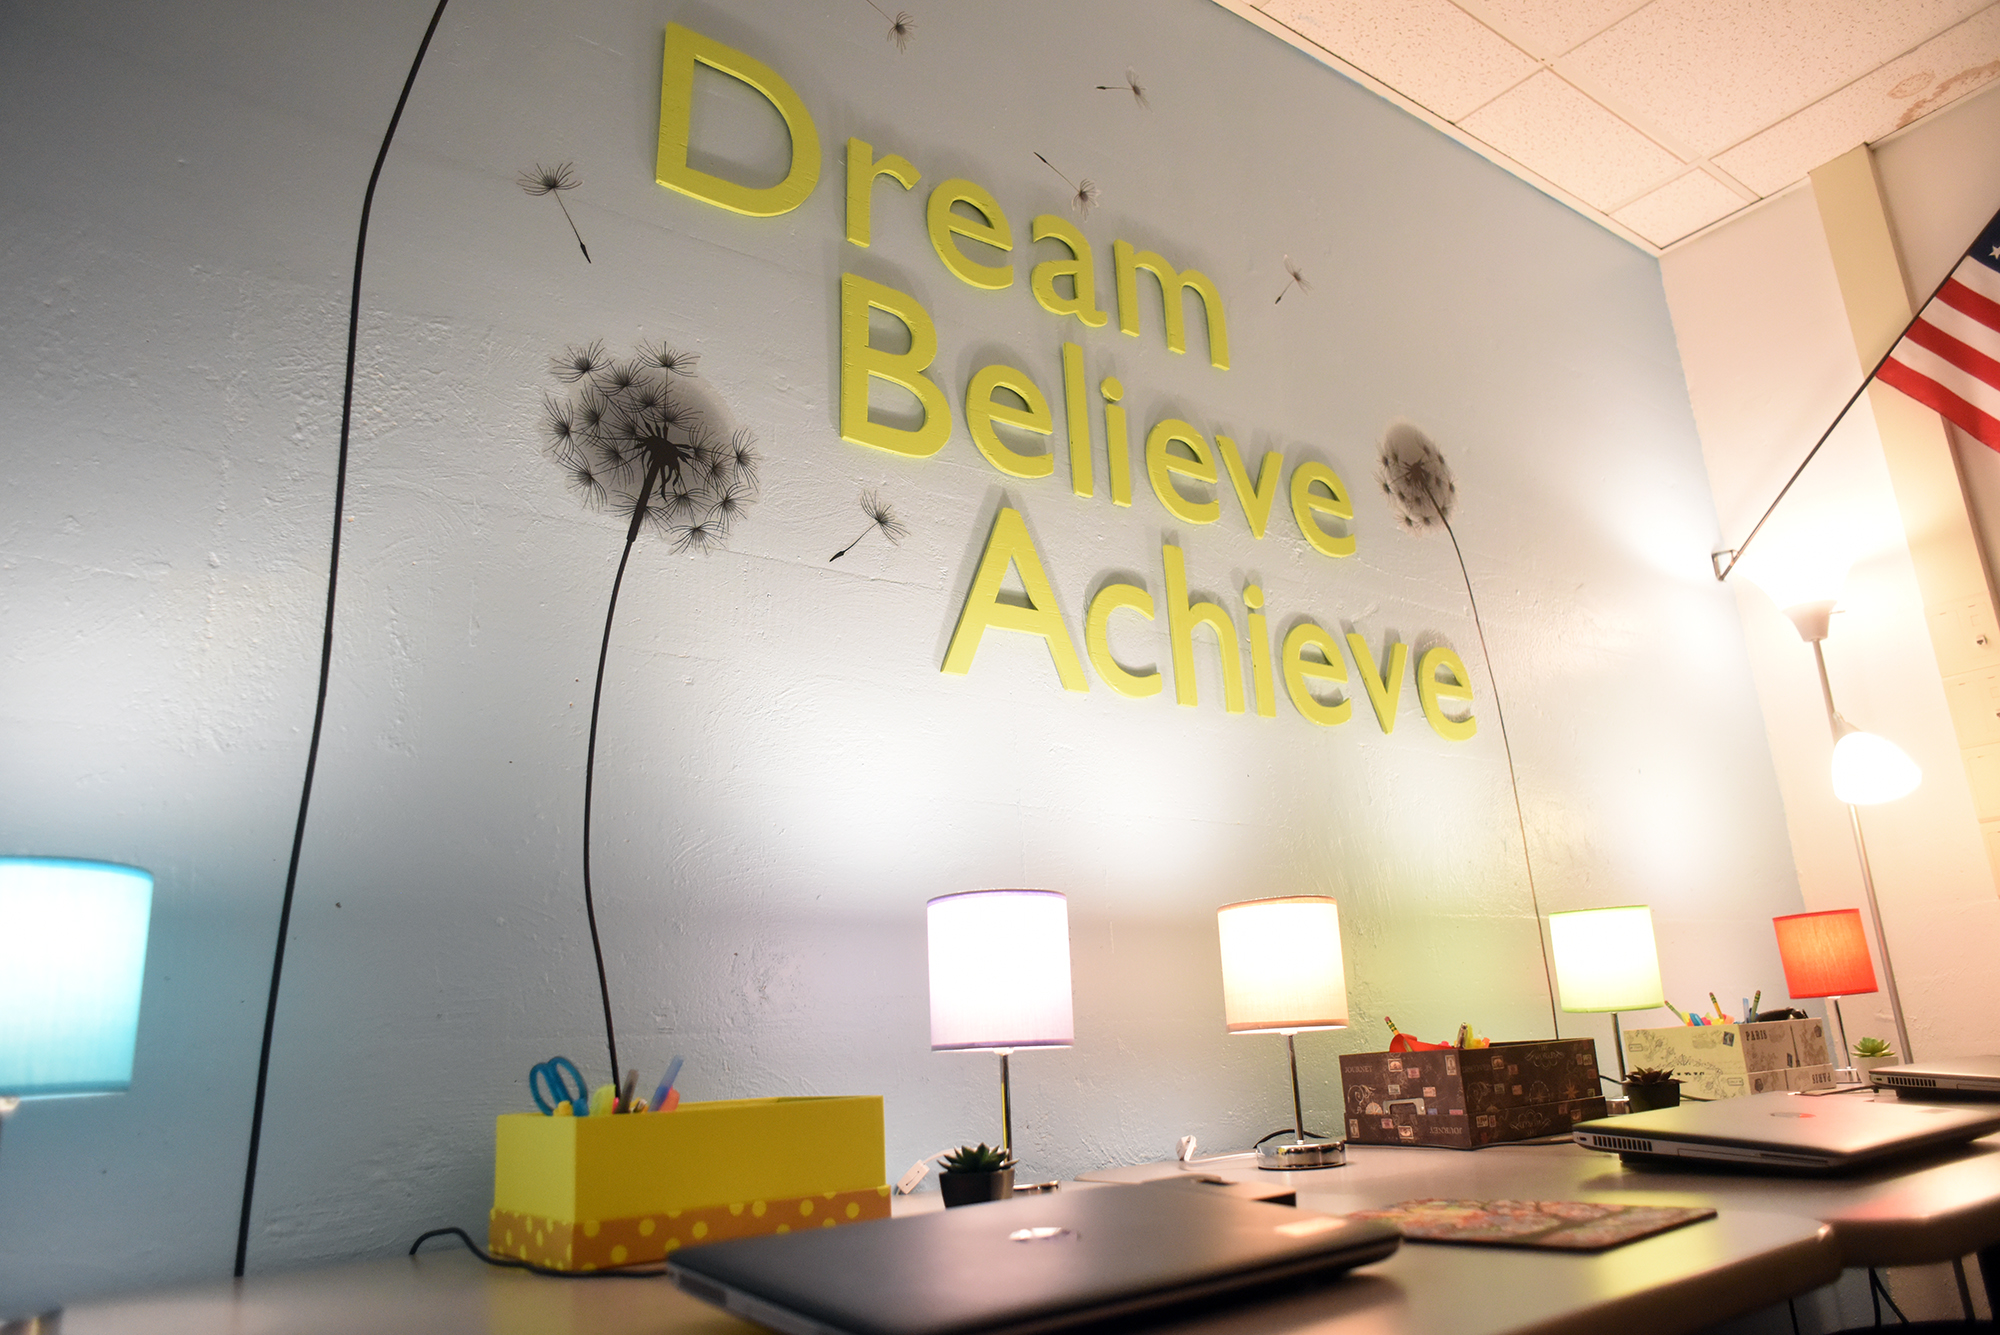 The Dream, Believe, Achieve sign in the ACC Classroom.